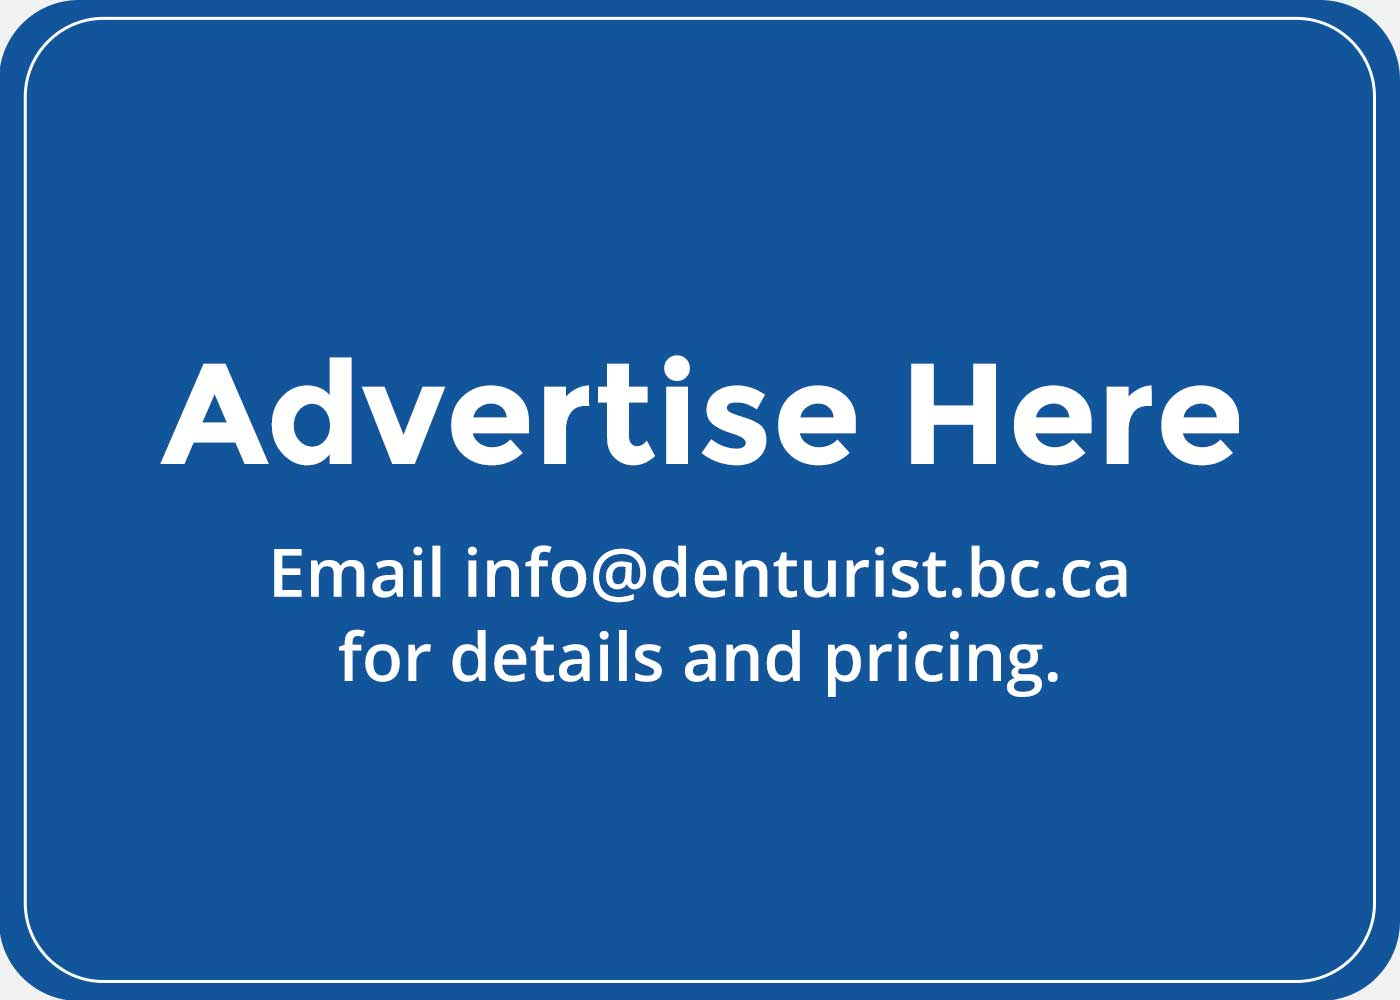 Advertise with the Denturist Association of BC